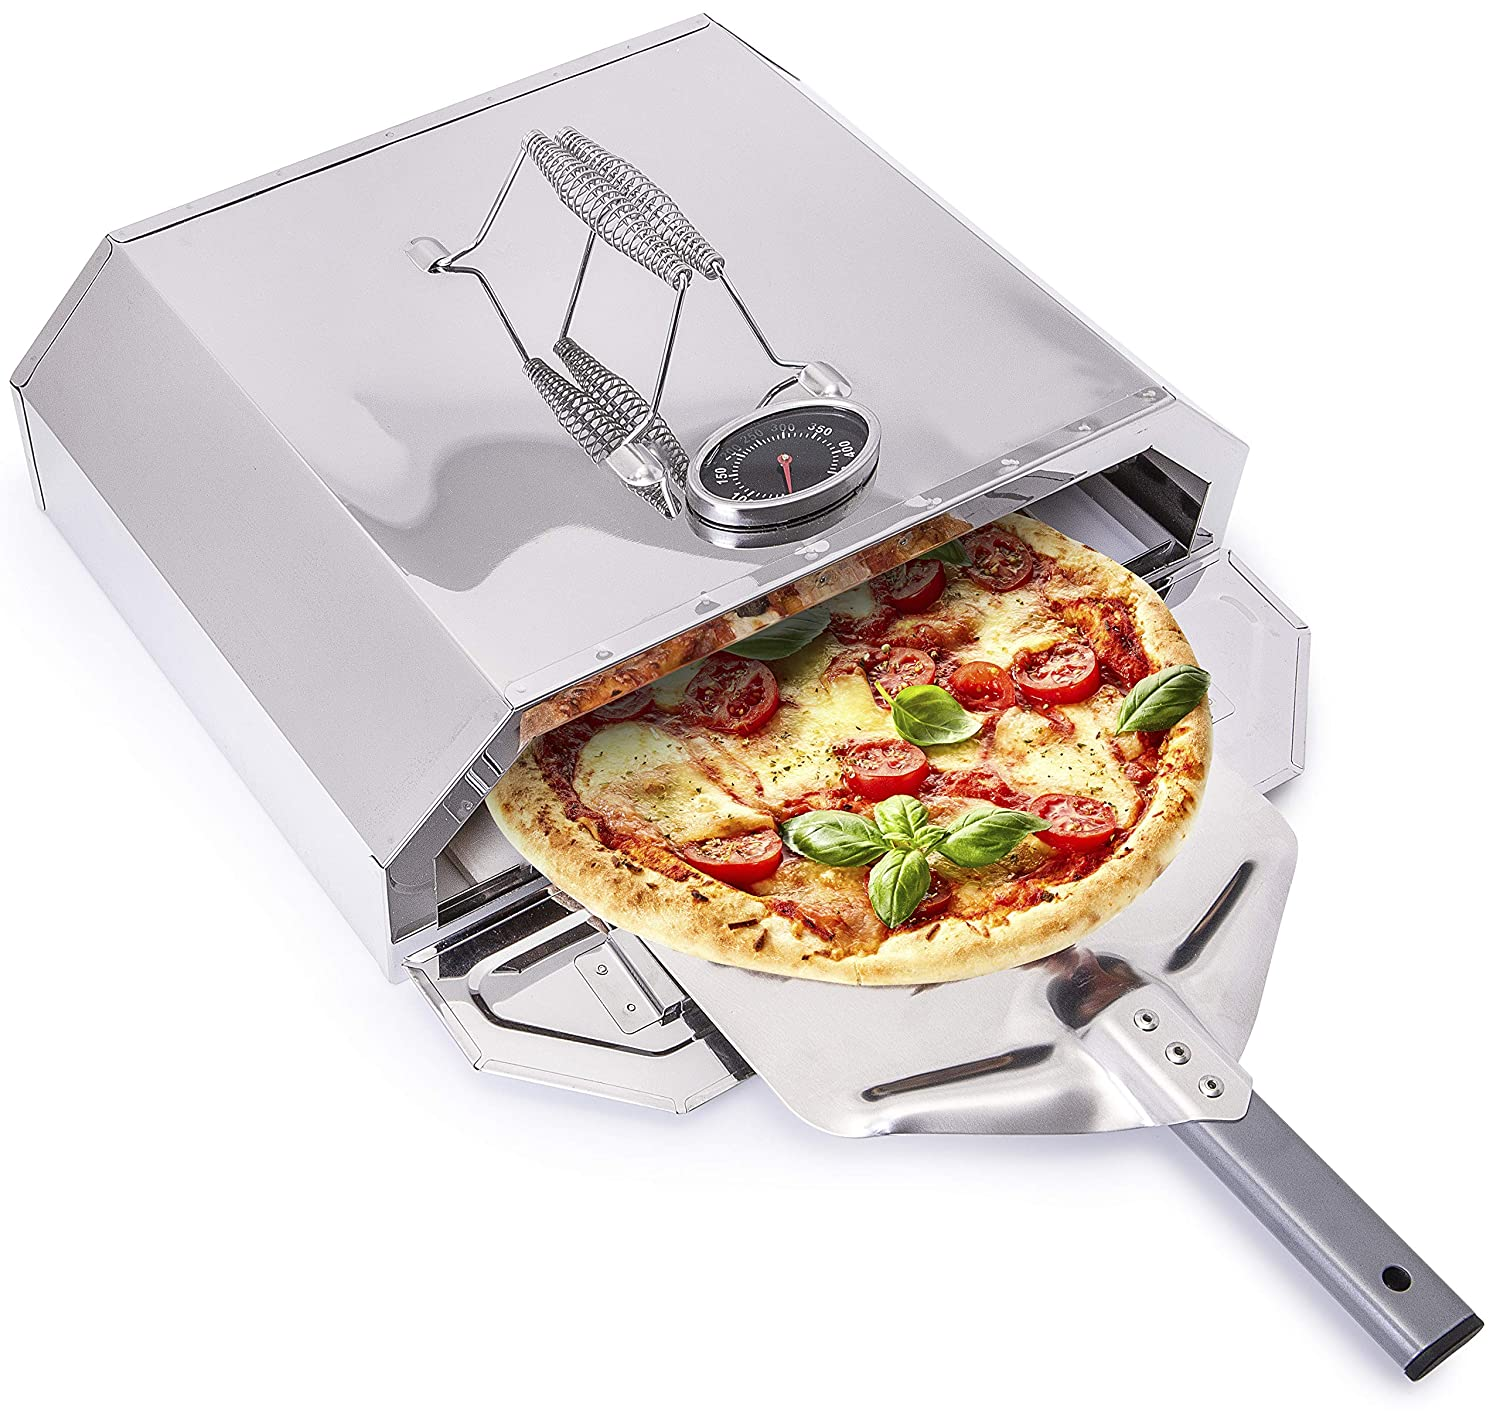 Stone Base Garden Parties Will Never Be the Same Again with this Amazing Pizza Grill Forno BBQ Pizza Oven Temperature Gauge Steel Box the Perfect Portable Outdoor Oven with Bonus Pizza Paddle